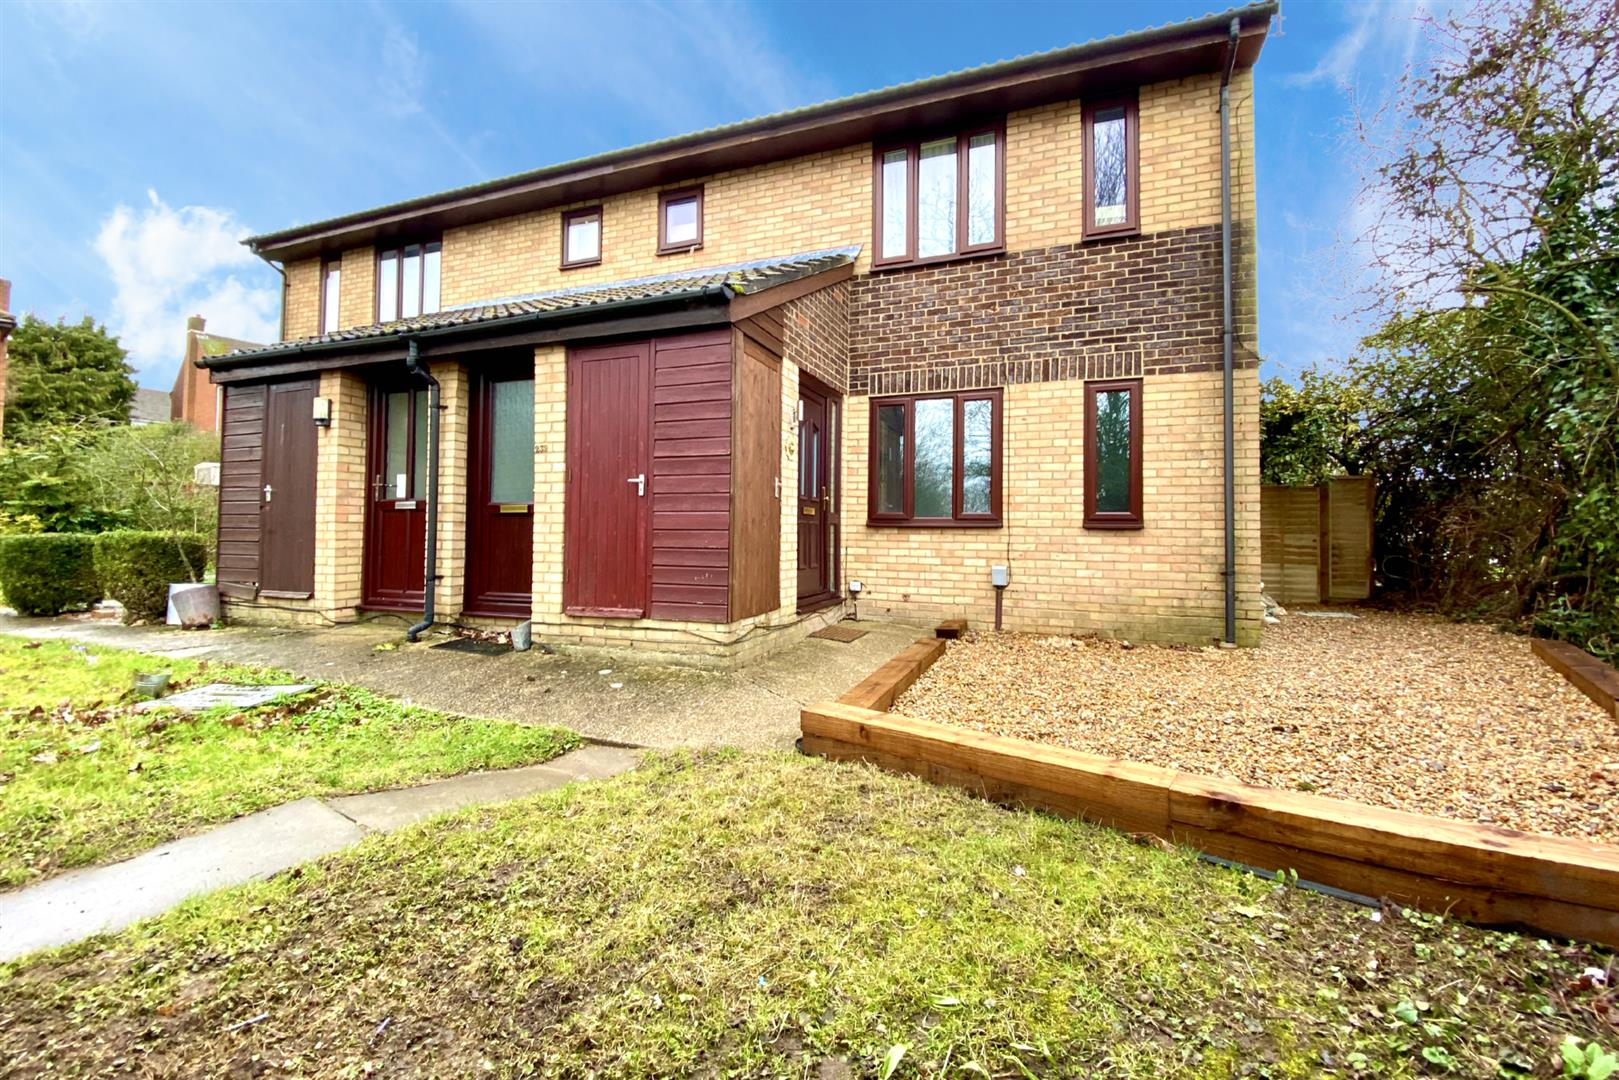 1 bed flat for sale in Lower Earley, RG6